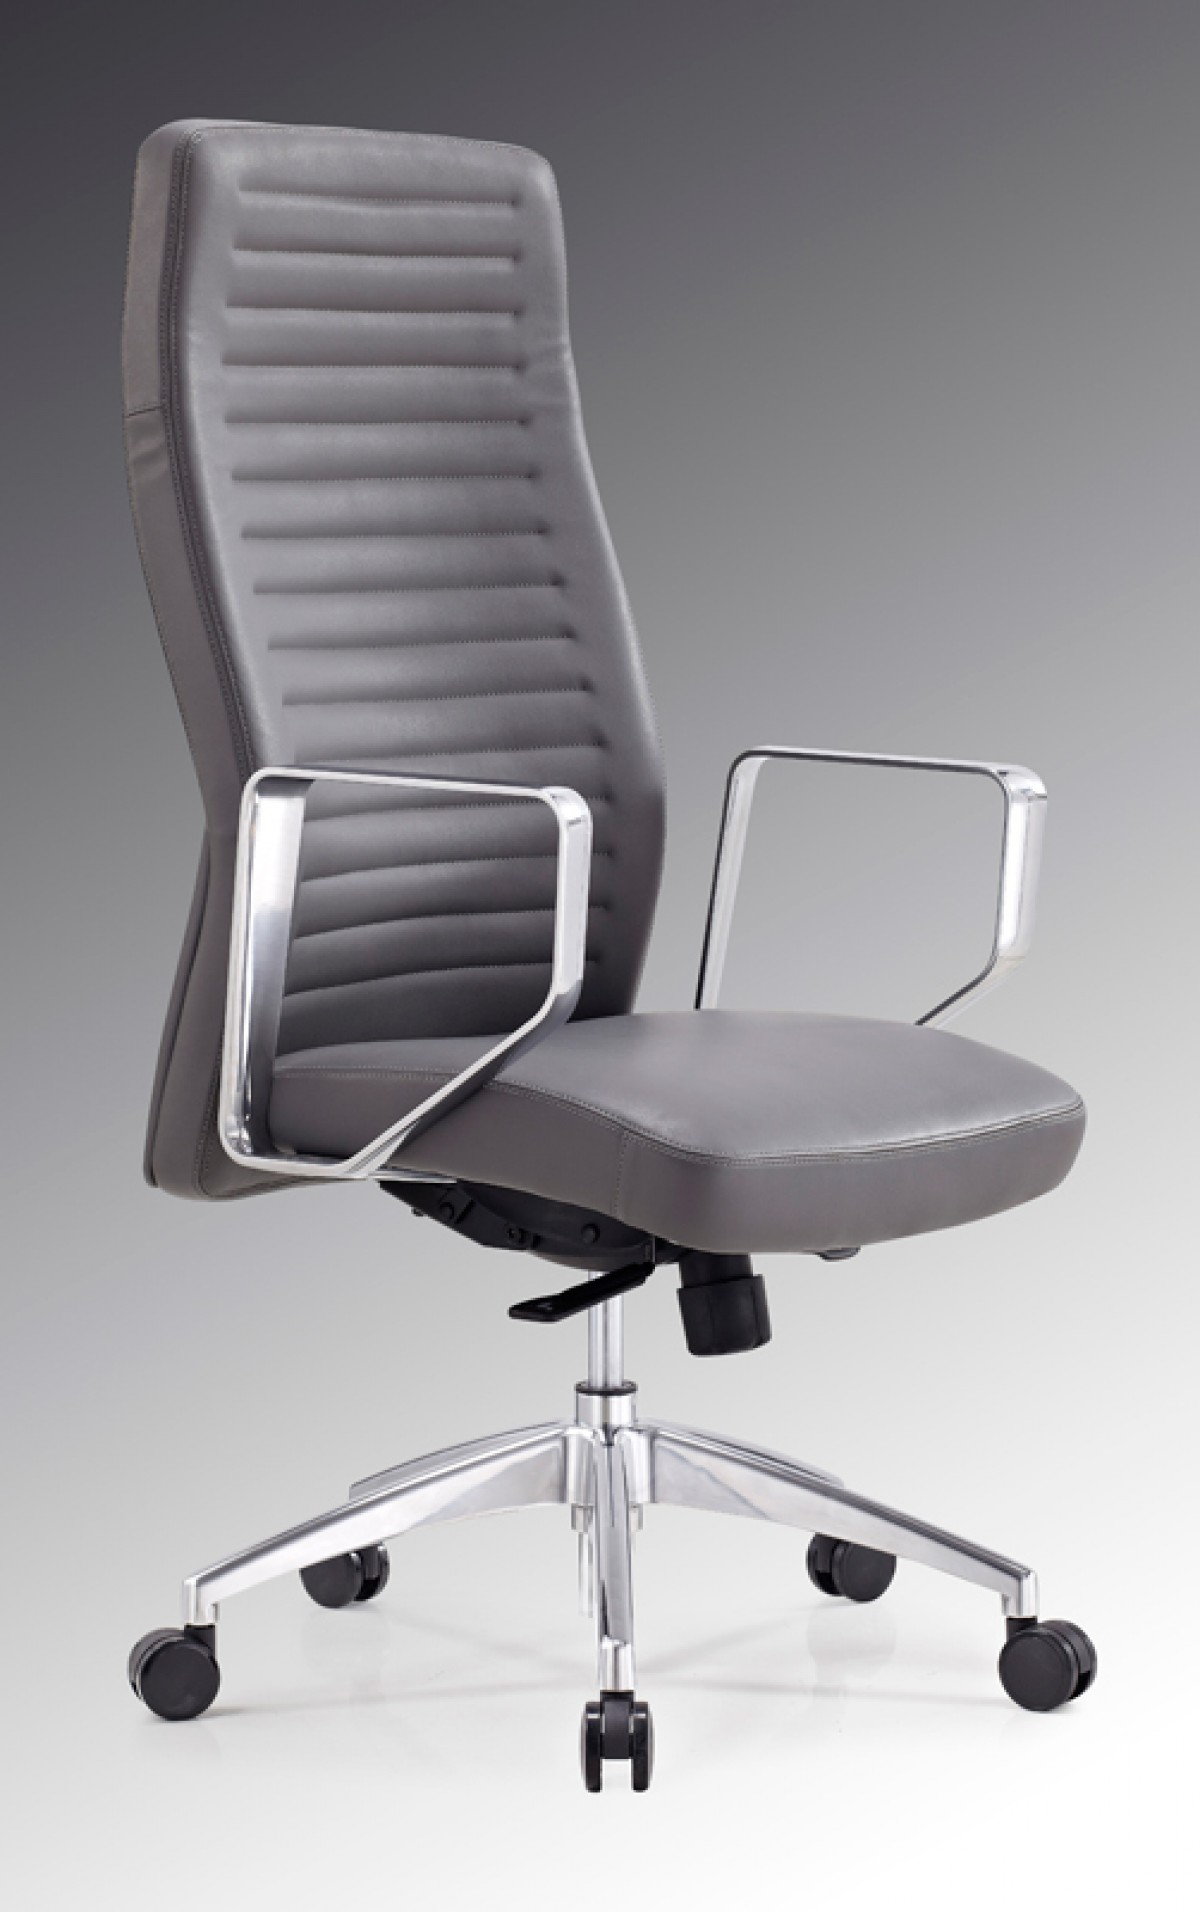 Modrest Barra Modern Grey High Back Office Chair Office Chairs Office